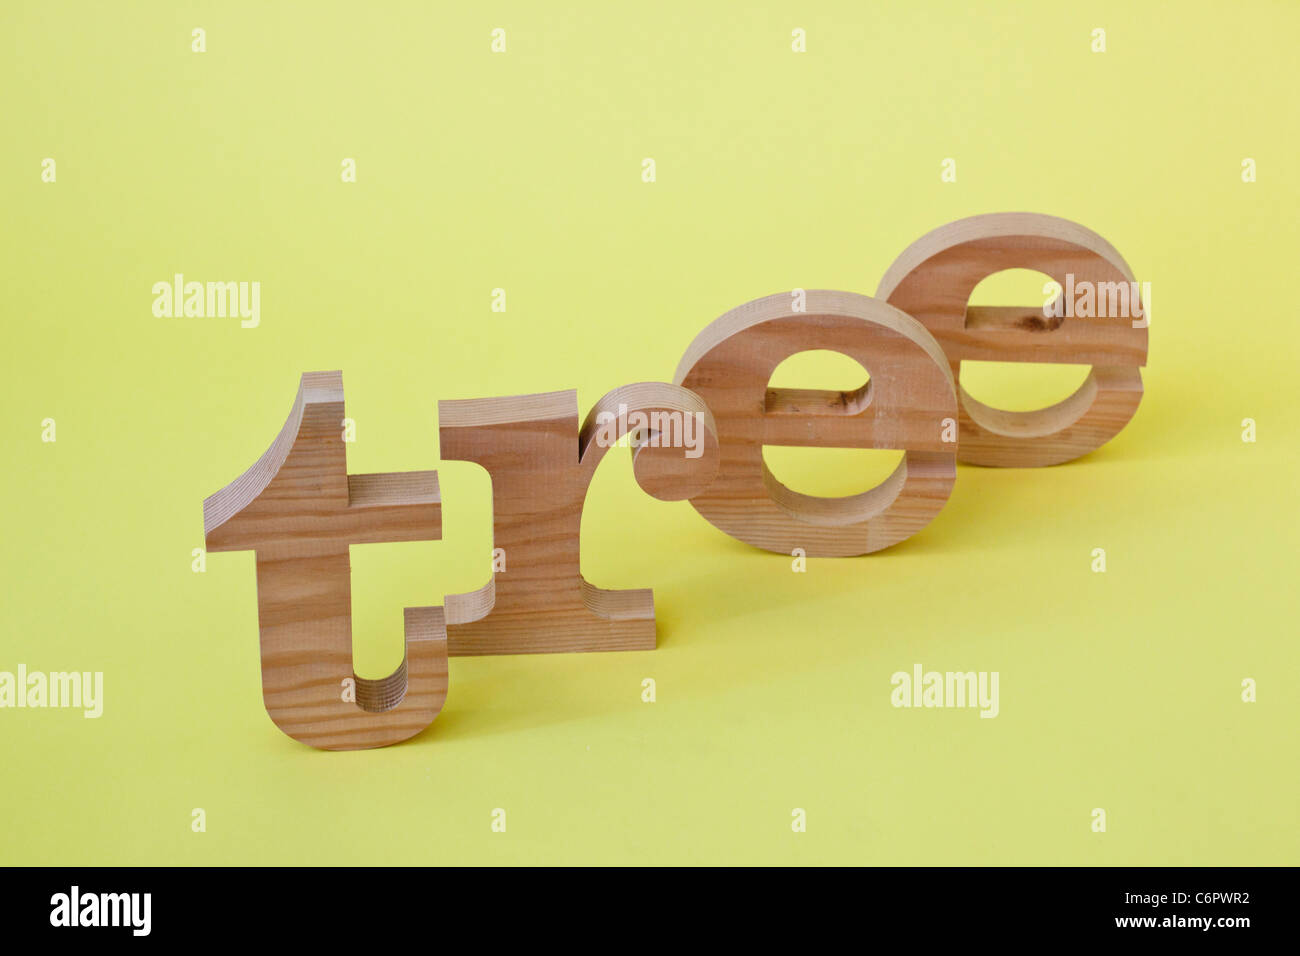 word 'tree' spelled with wooden letters - Stock Image